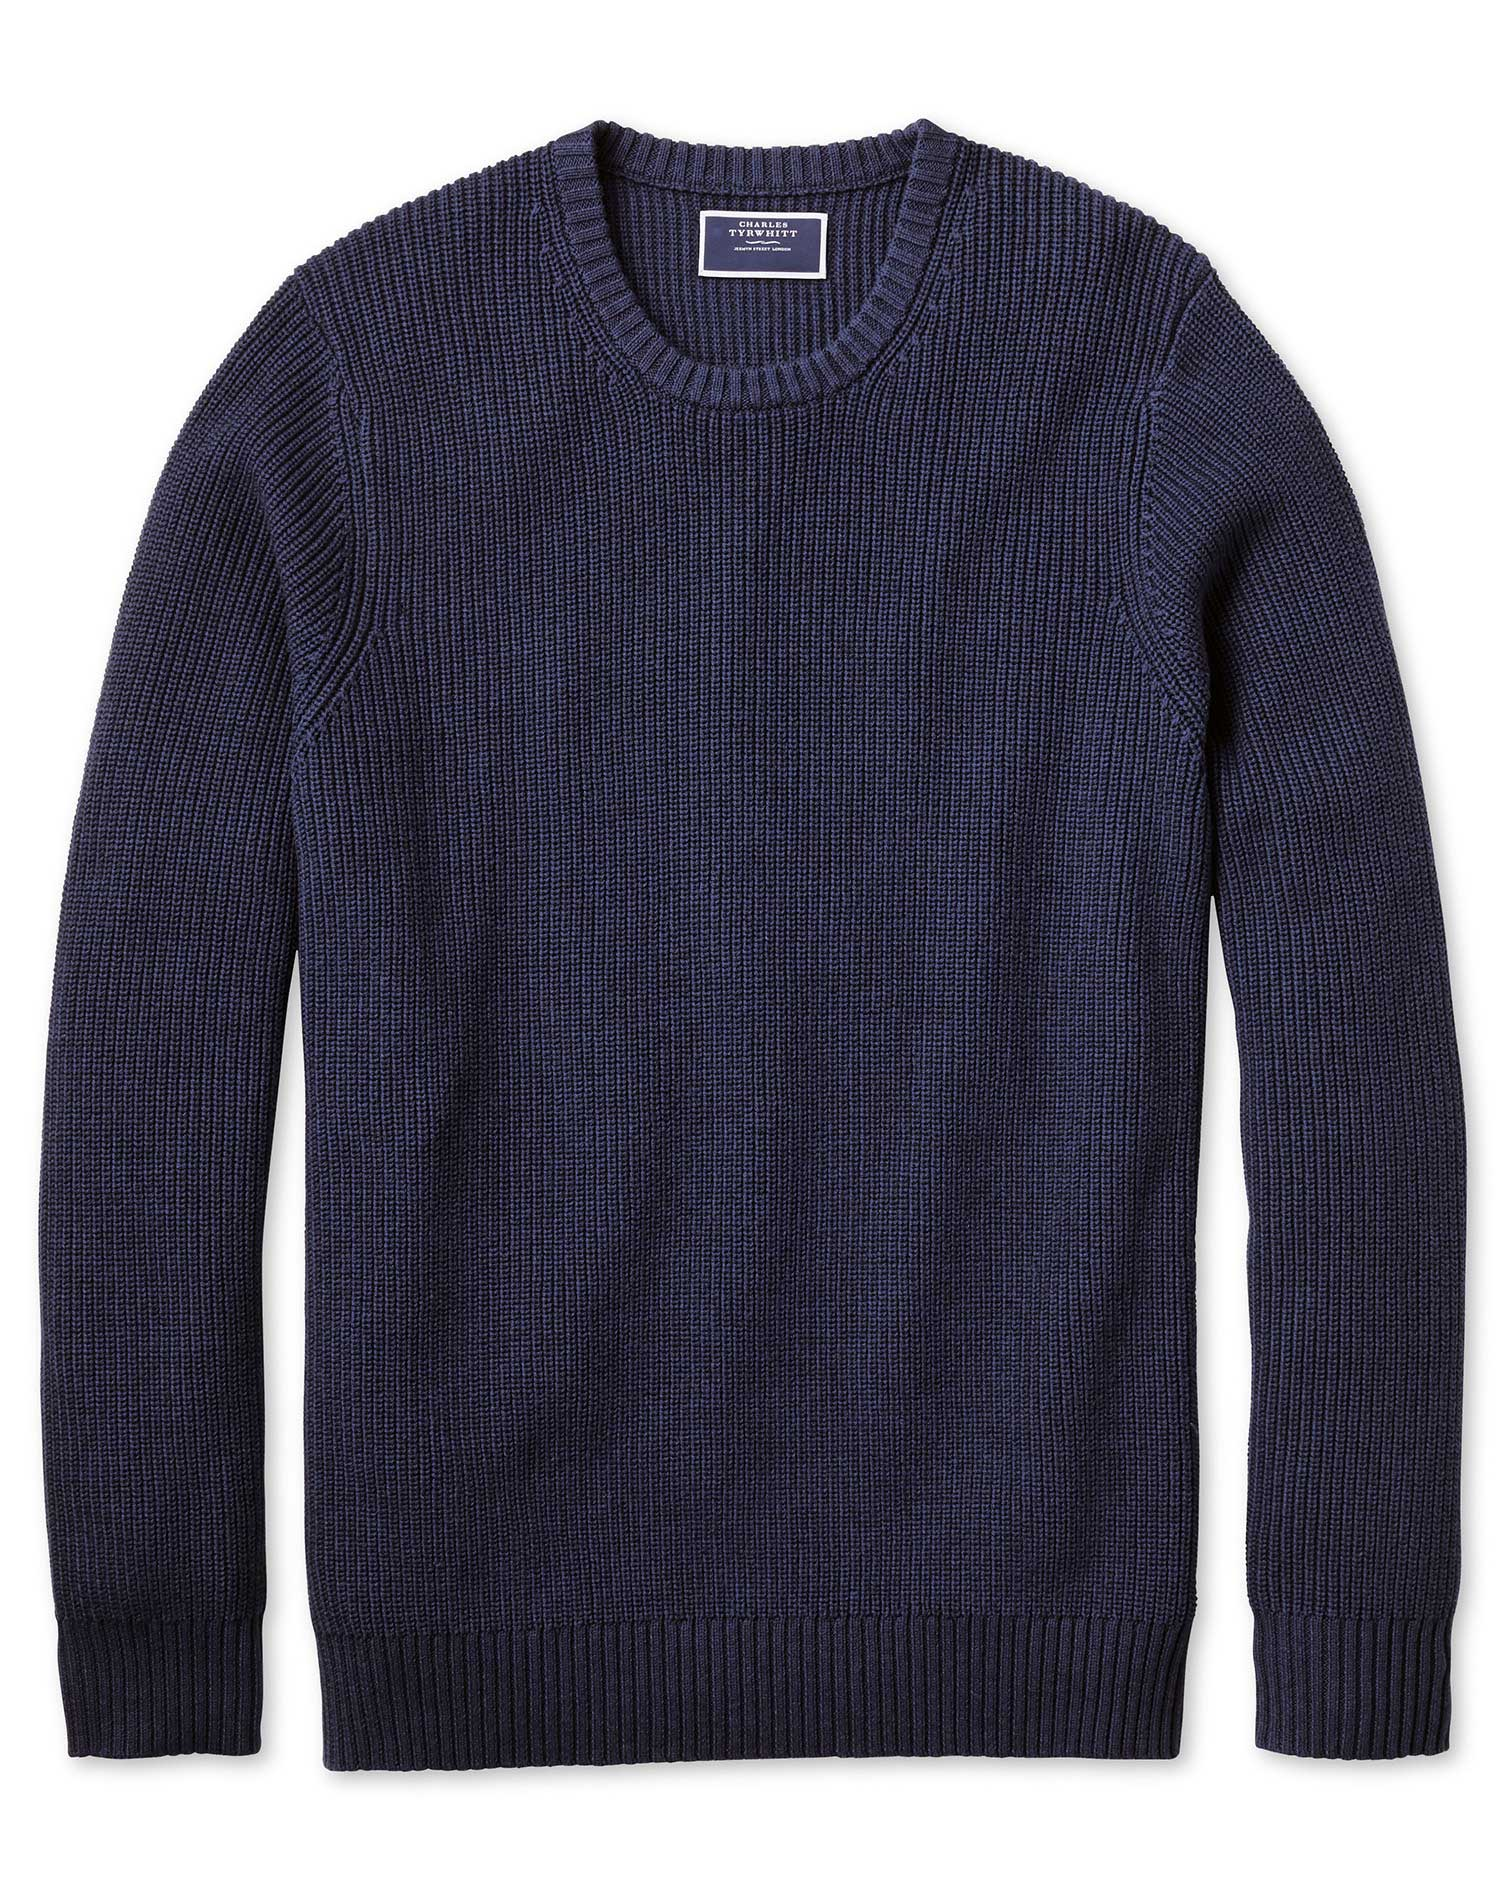 Navy Crew Neck Pima Cotton Yak Rib Jumper Size XS by Charles Tyrwhitt